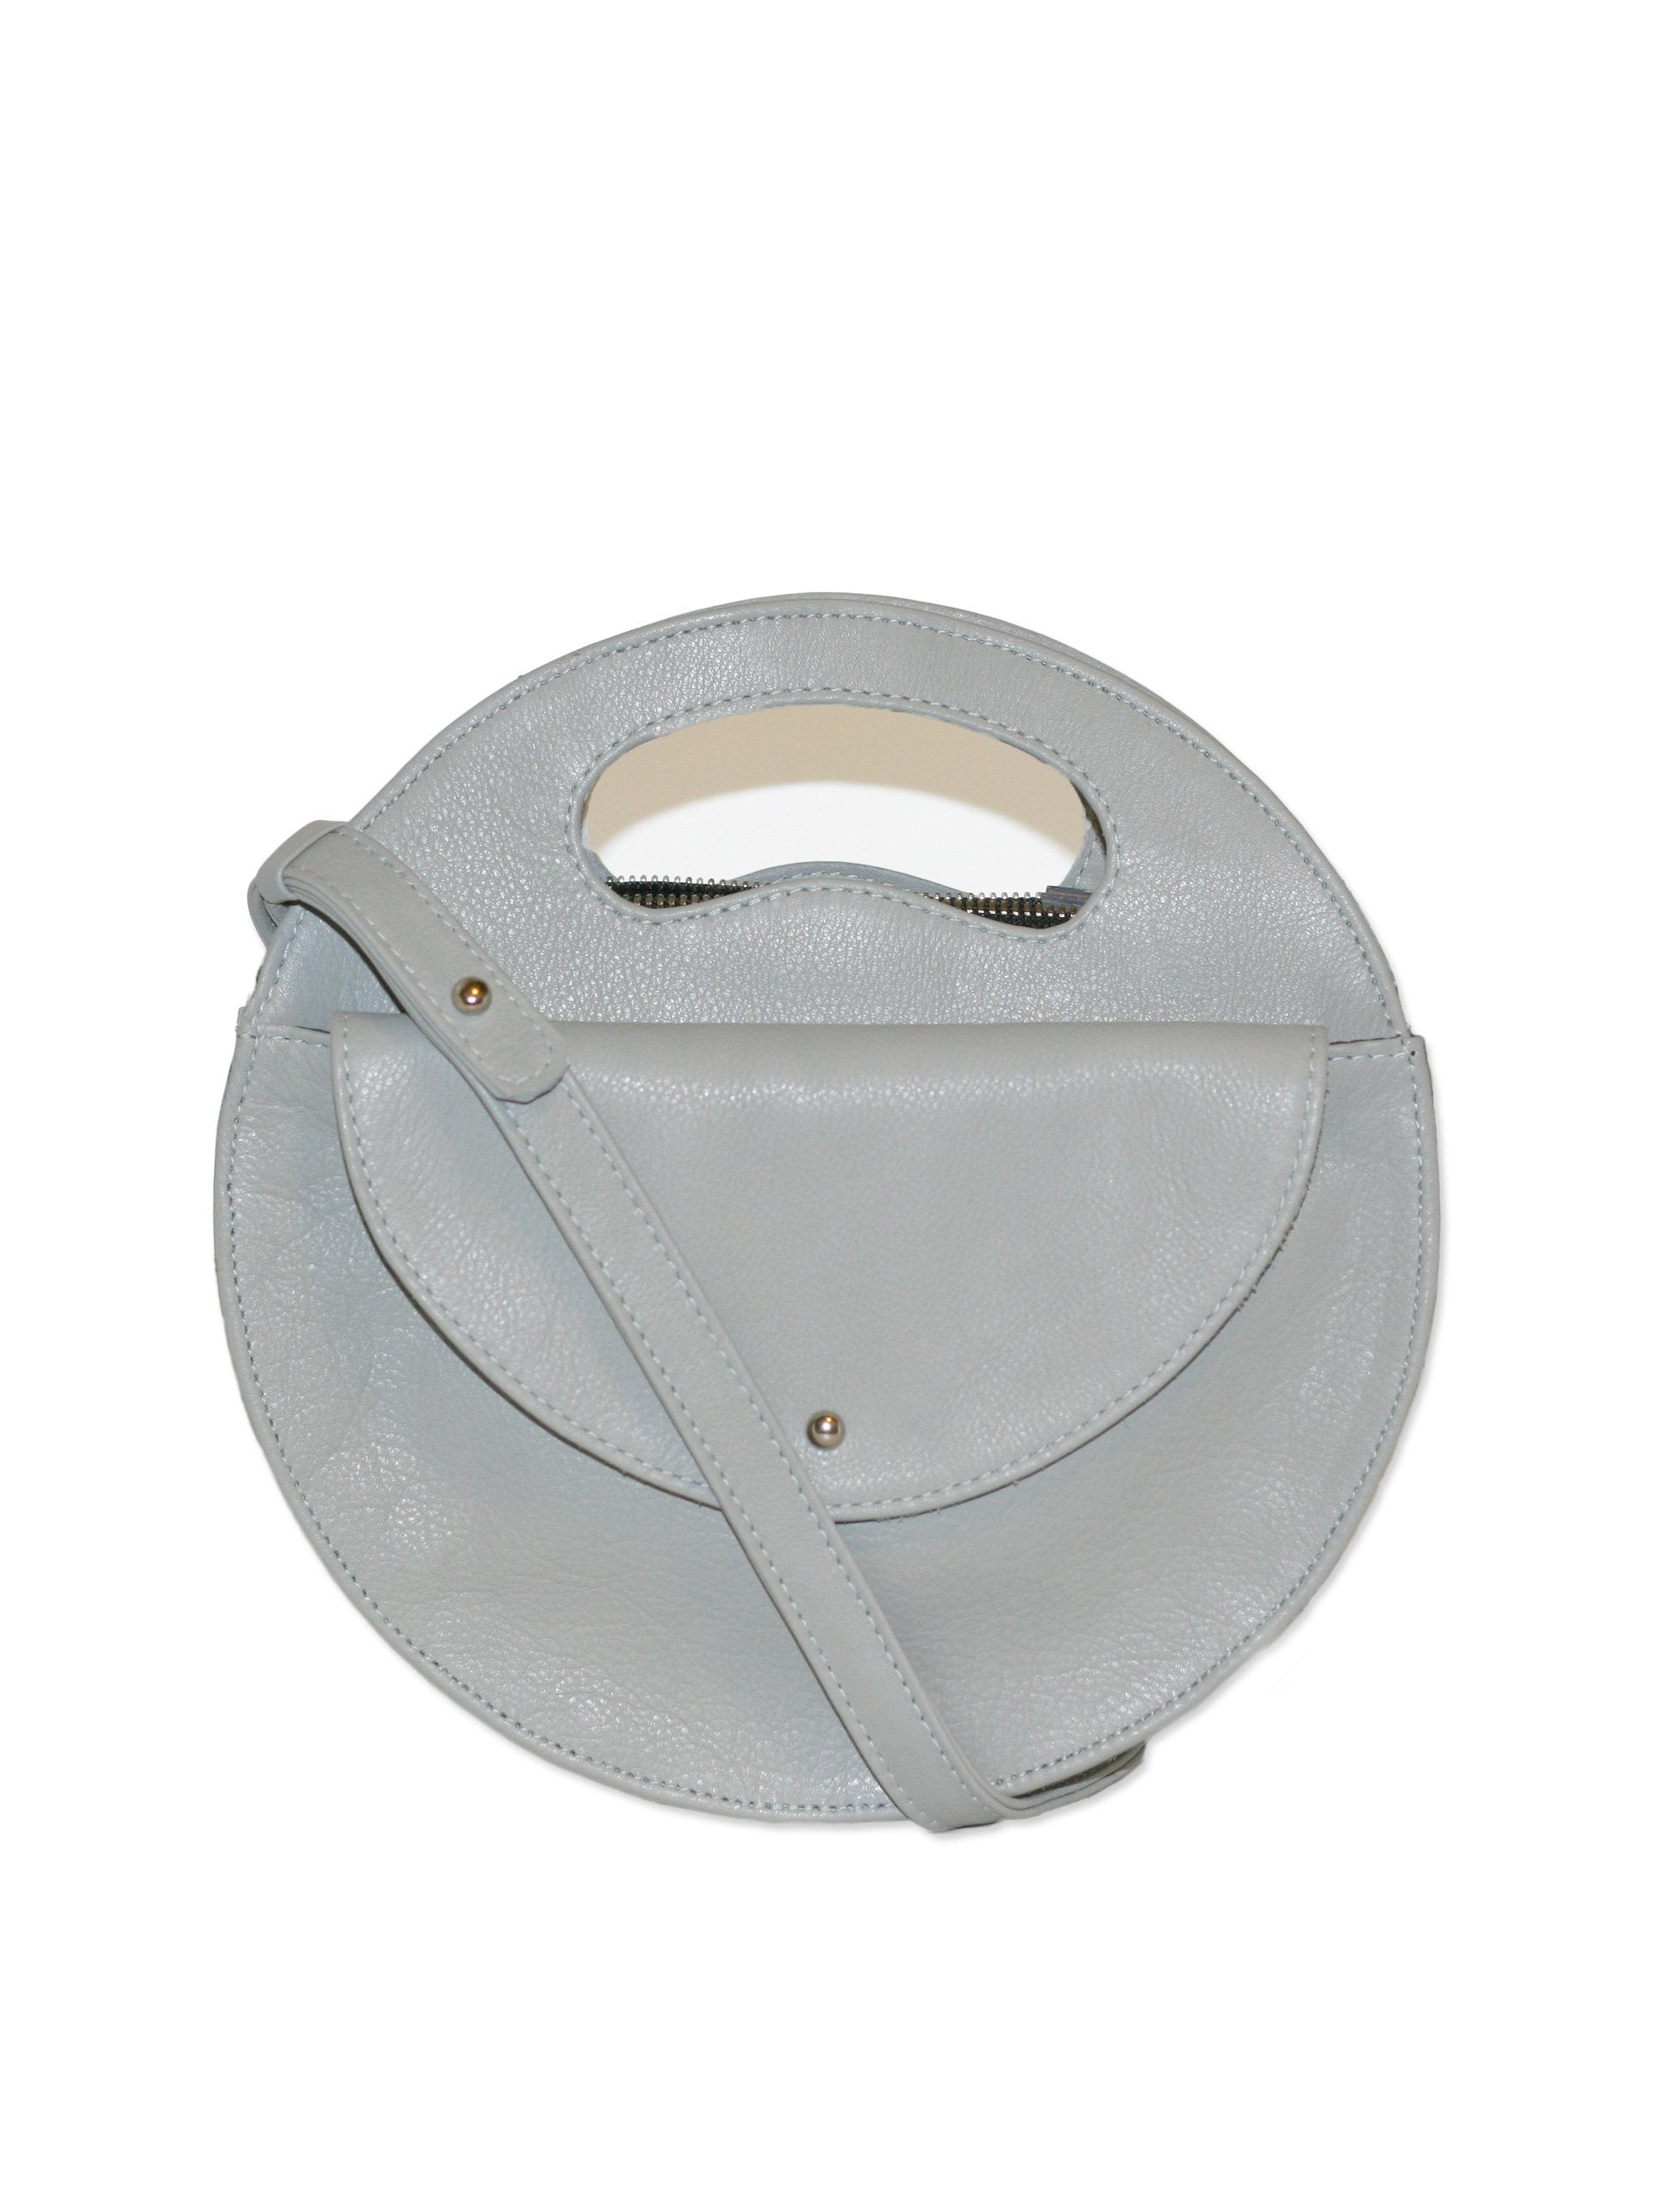 Moon Bag / Light Gray